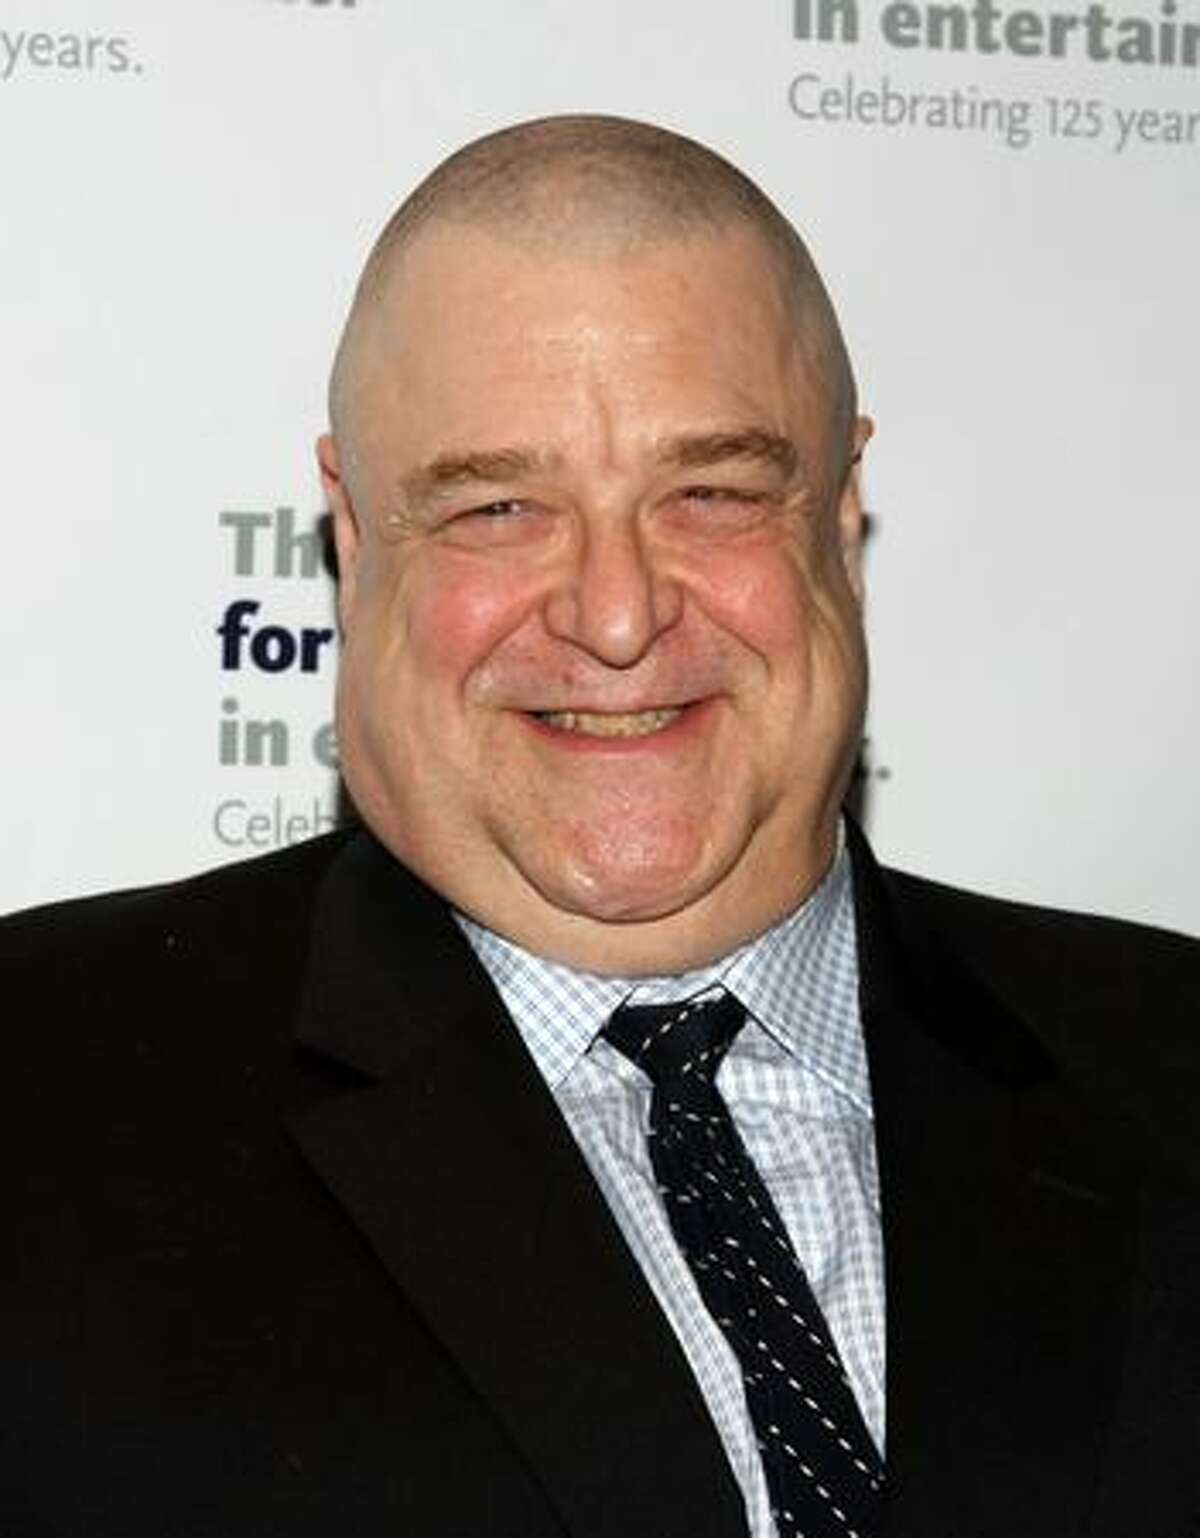 Actor John Goodman attends the launch of The Actors' Fund